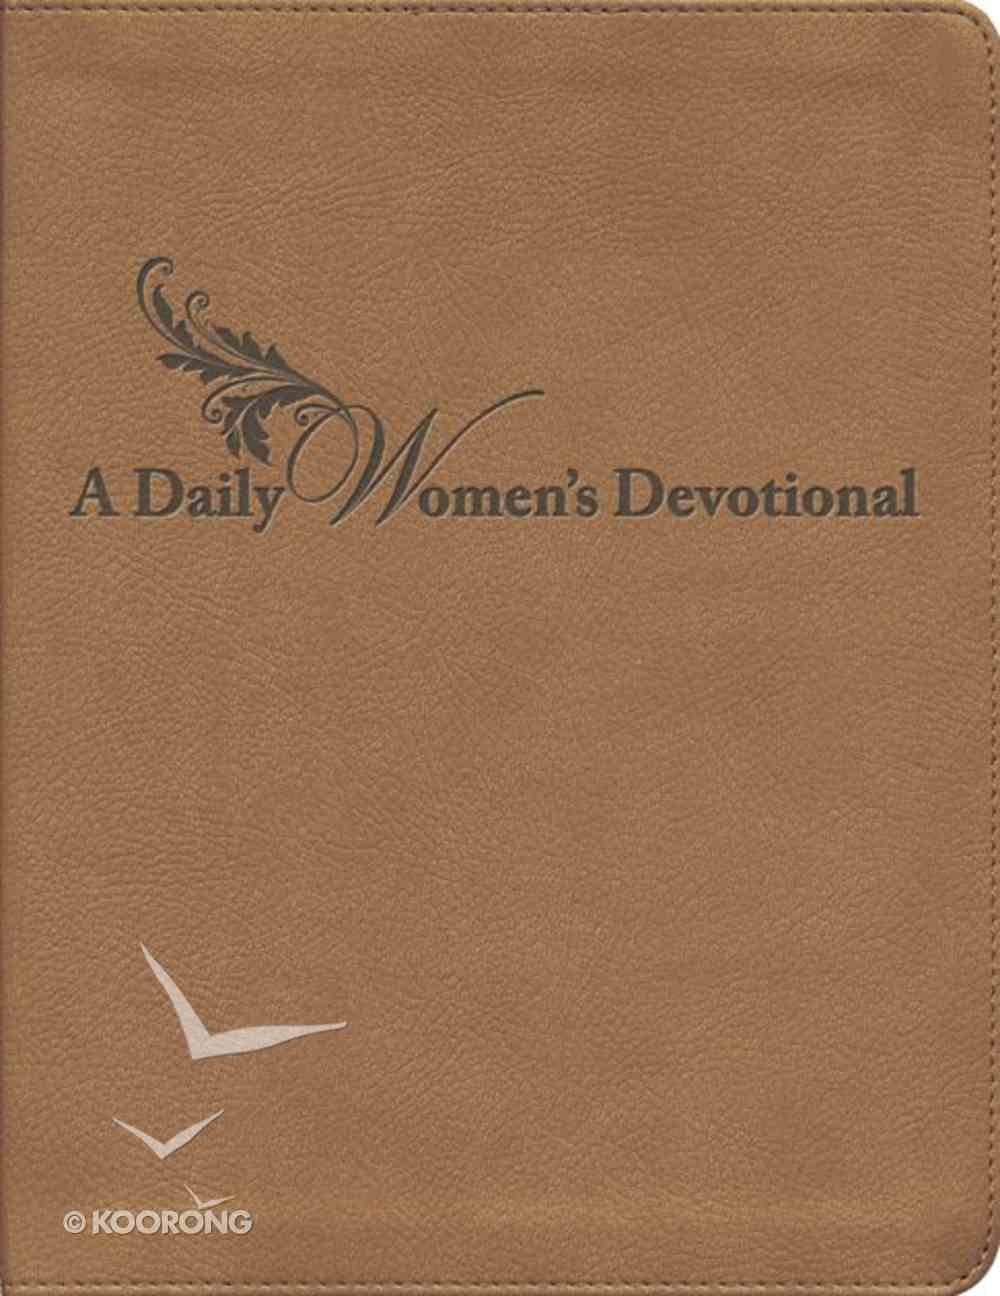 A Daily Woman's Devotional Imitation Leather